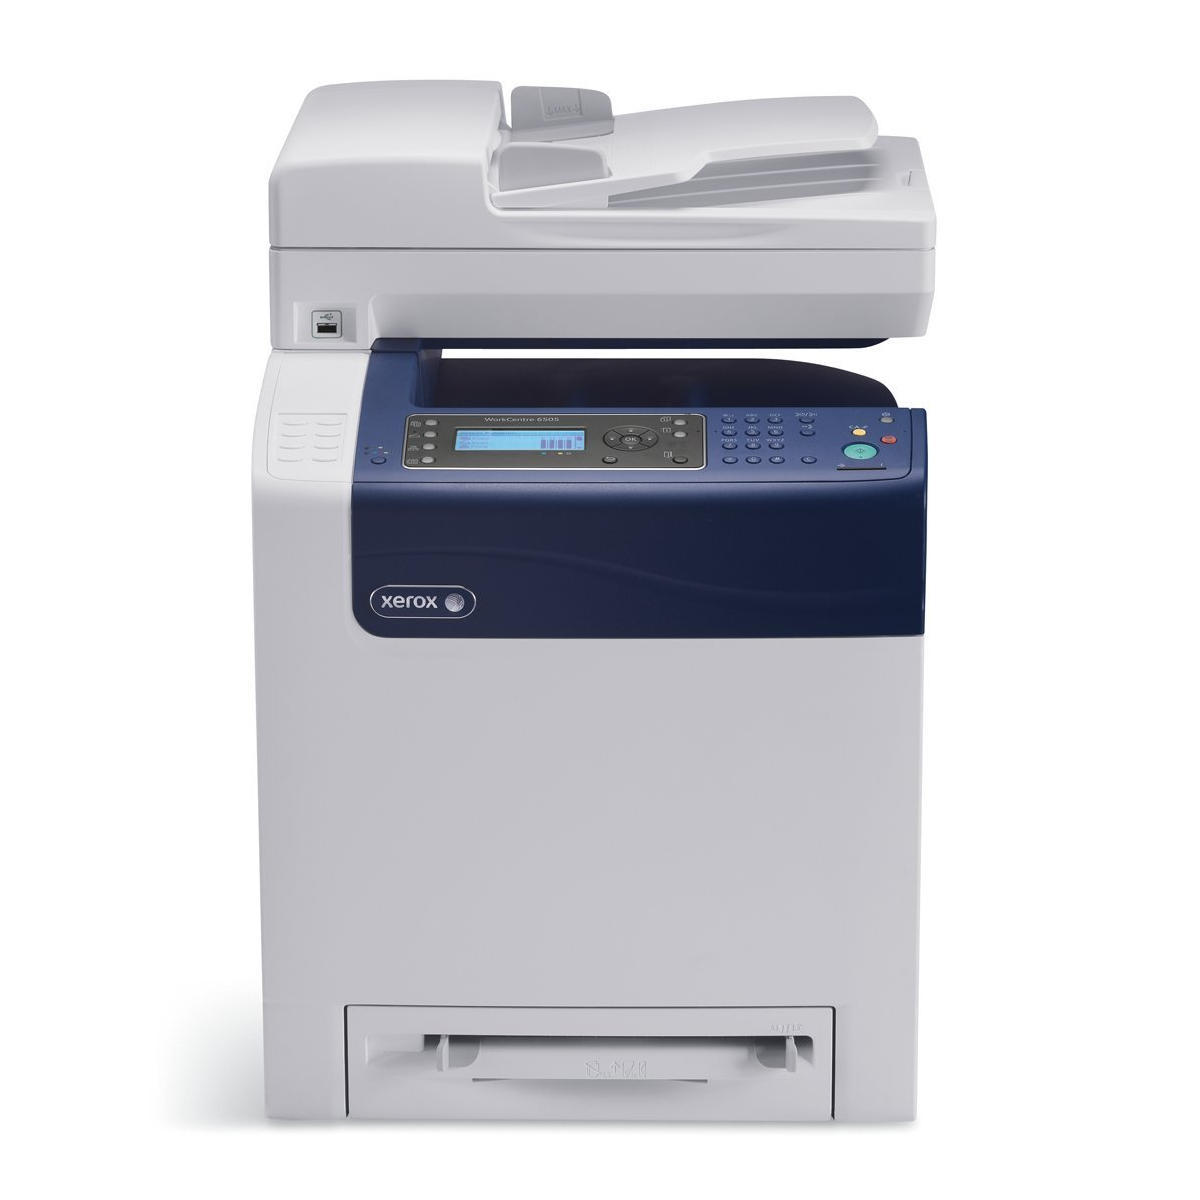 Xerox WorkCentre 6505/N All-In-One Colour LED Laser Printer (WorkCentre 6505)